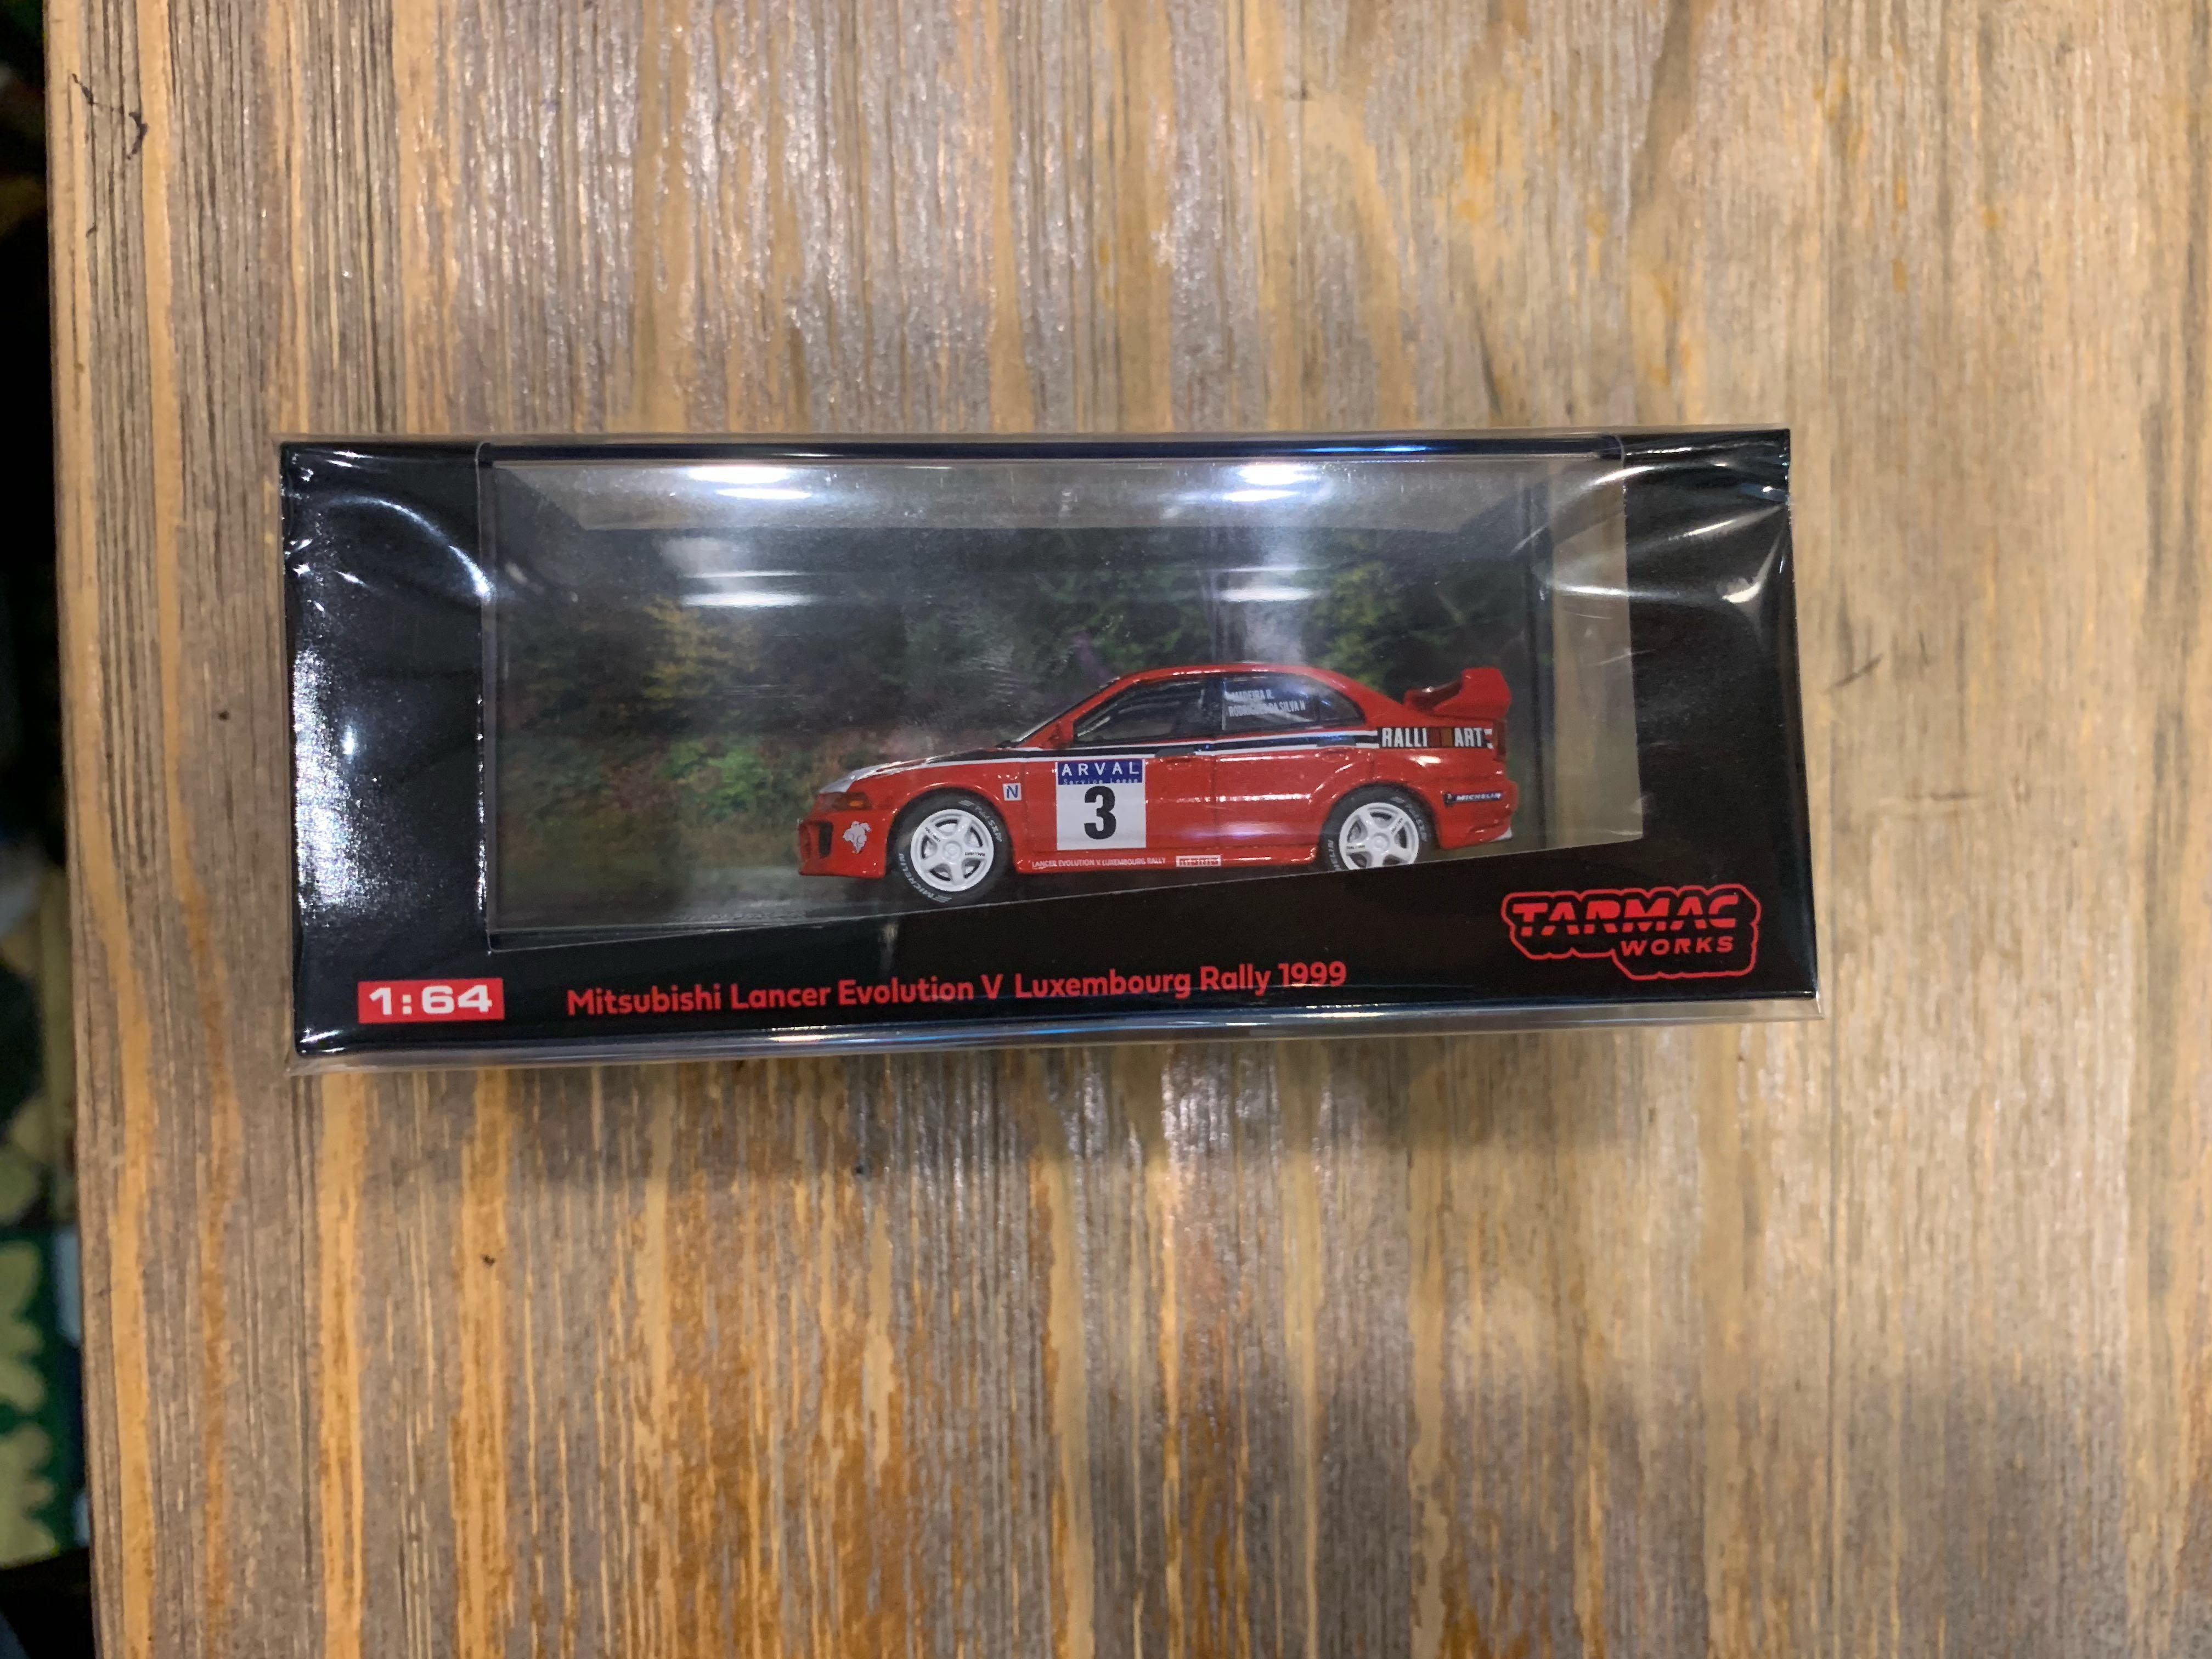 Tarmac works Mitsubishi Lancer Evolution V Luxembourg Rally 1999  Philippine excluive菲律賓會場限定